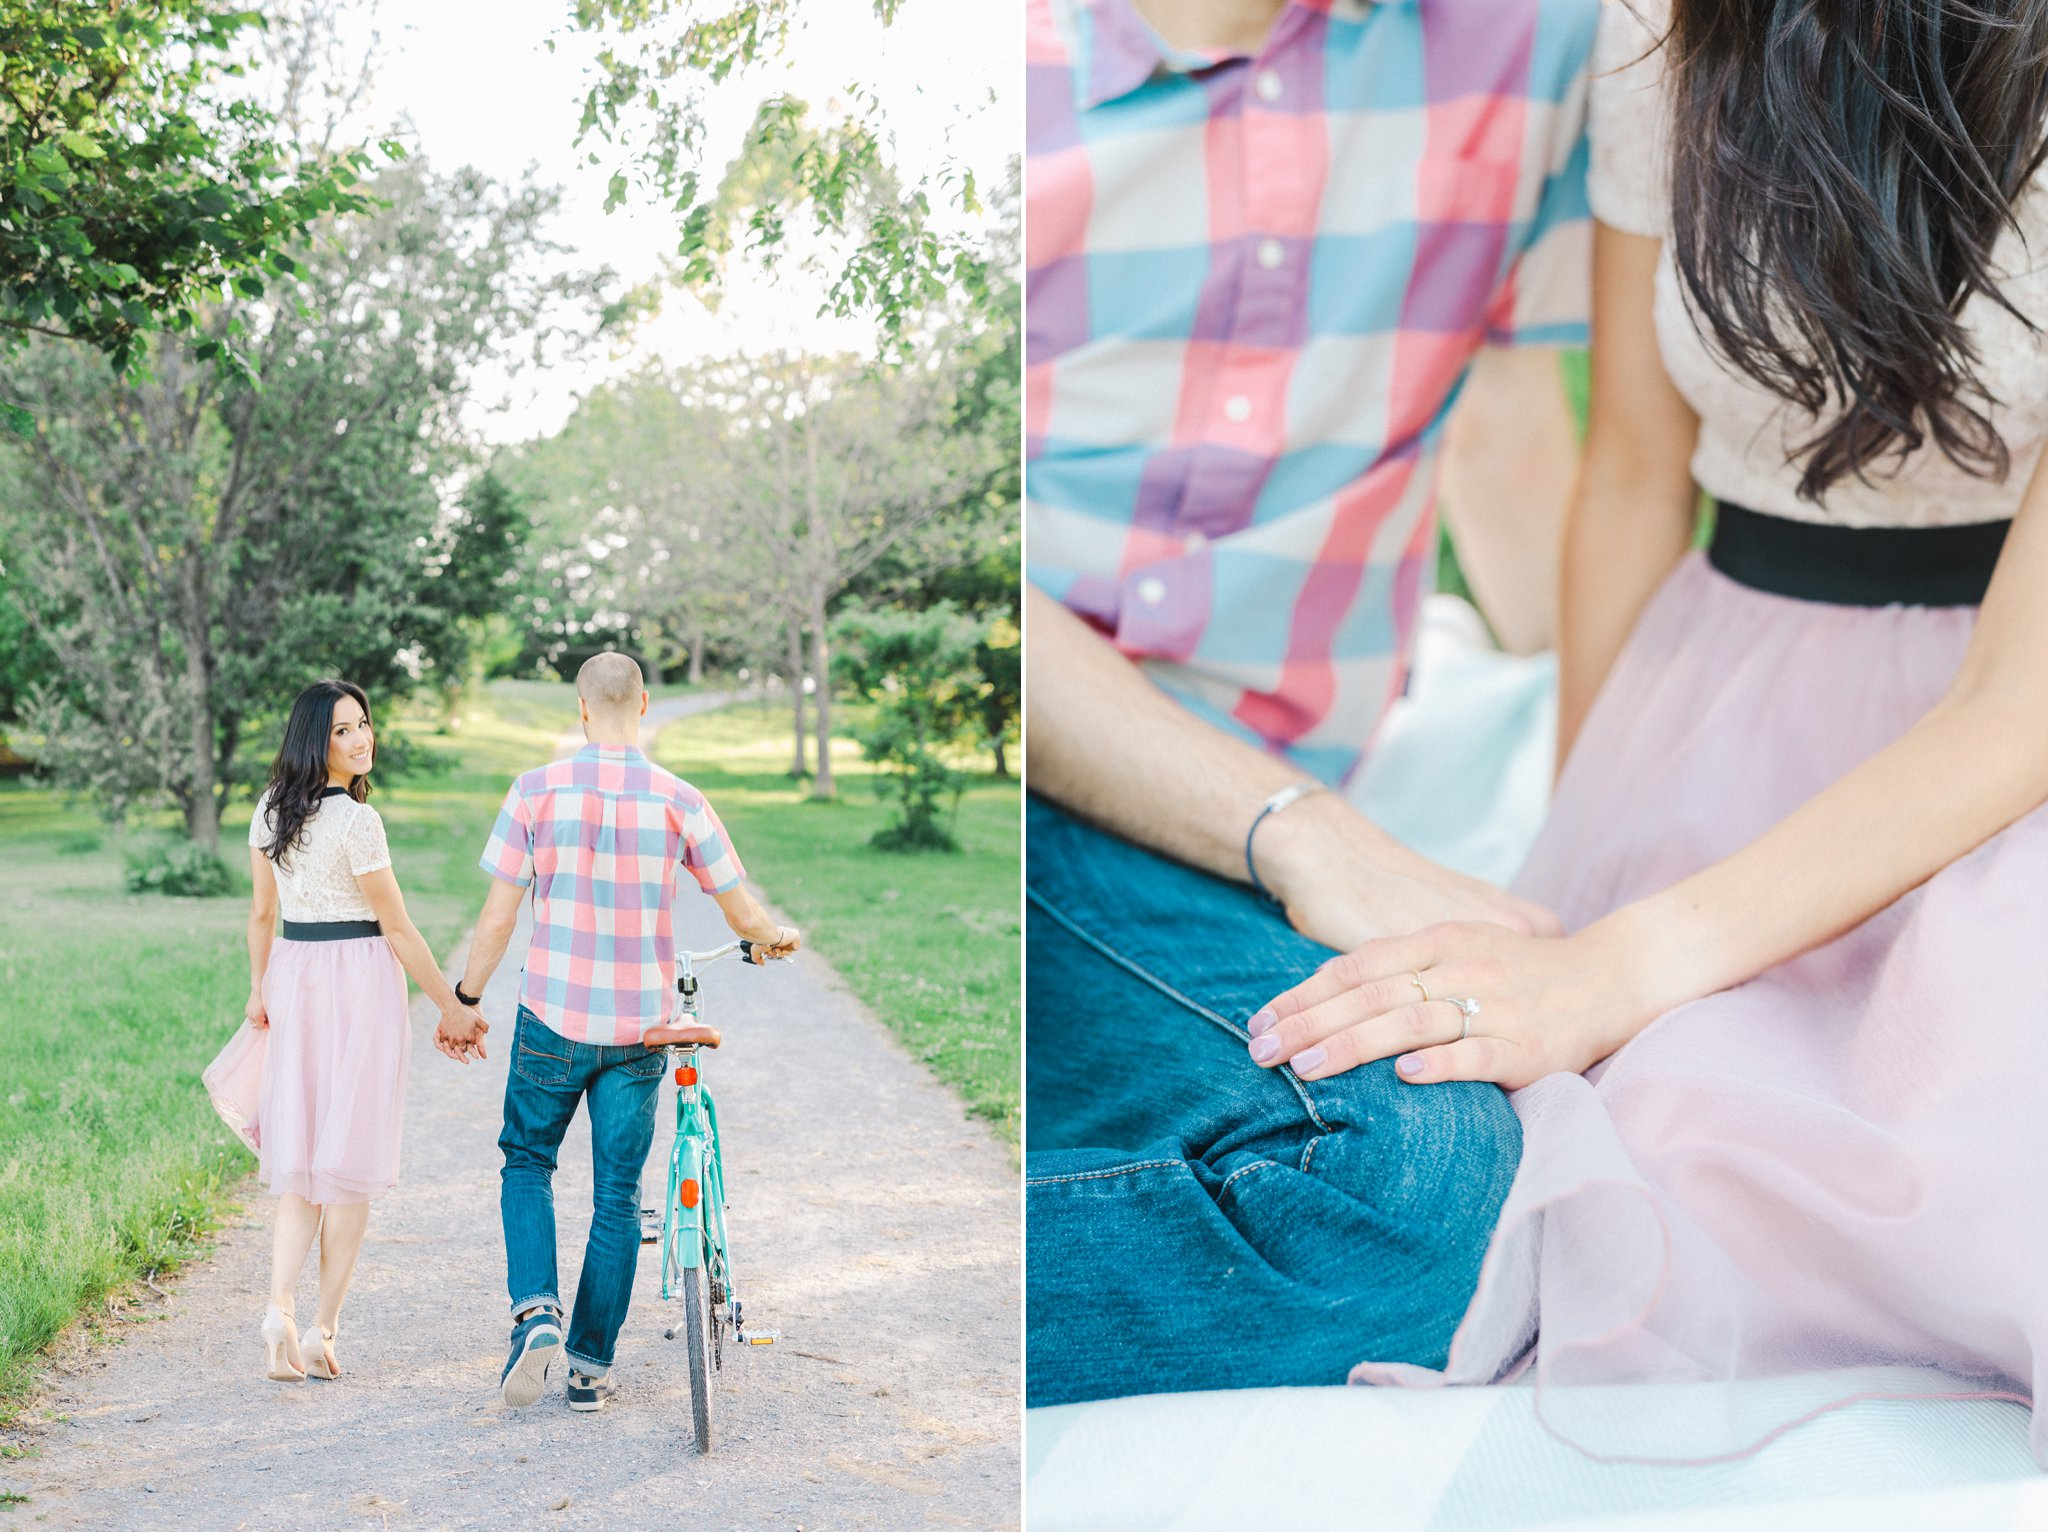 Blush tulle skirt, teal bicycle, bicycle engagement photos in the arboretum, One Fine Beauty, Showpony Hair, Amy Pinder Photography